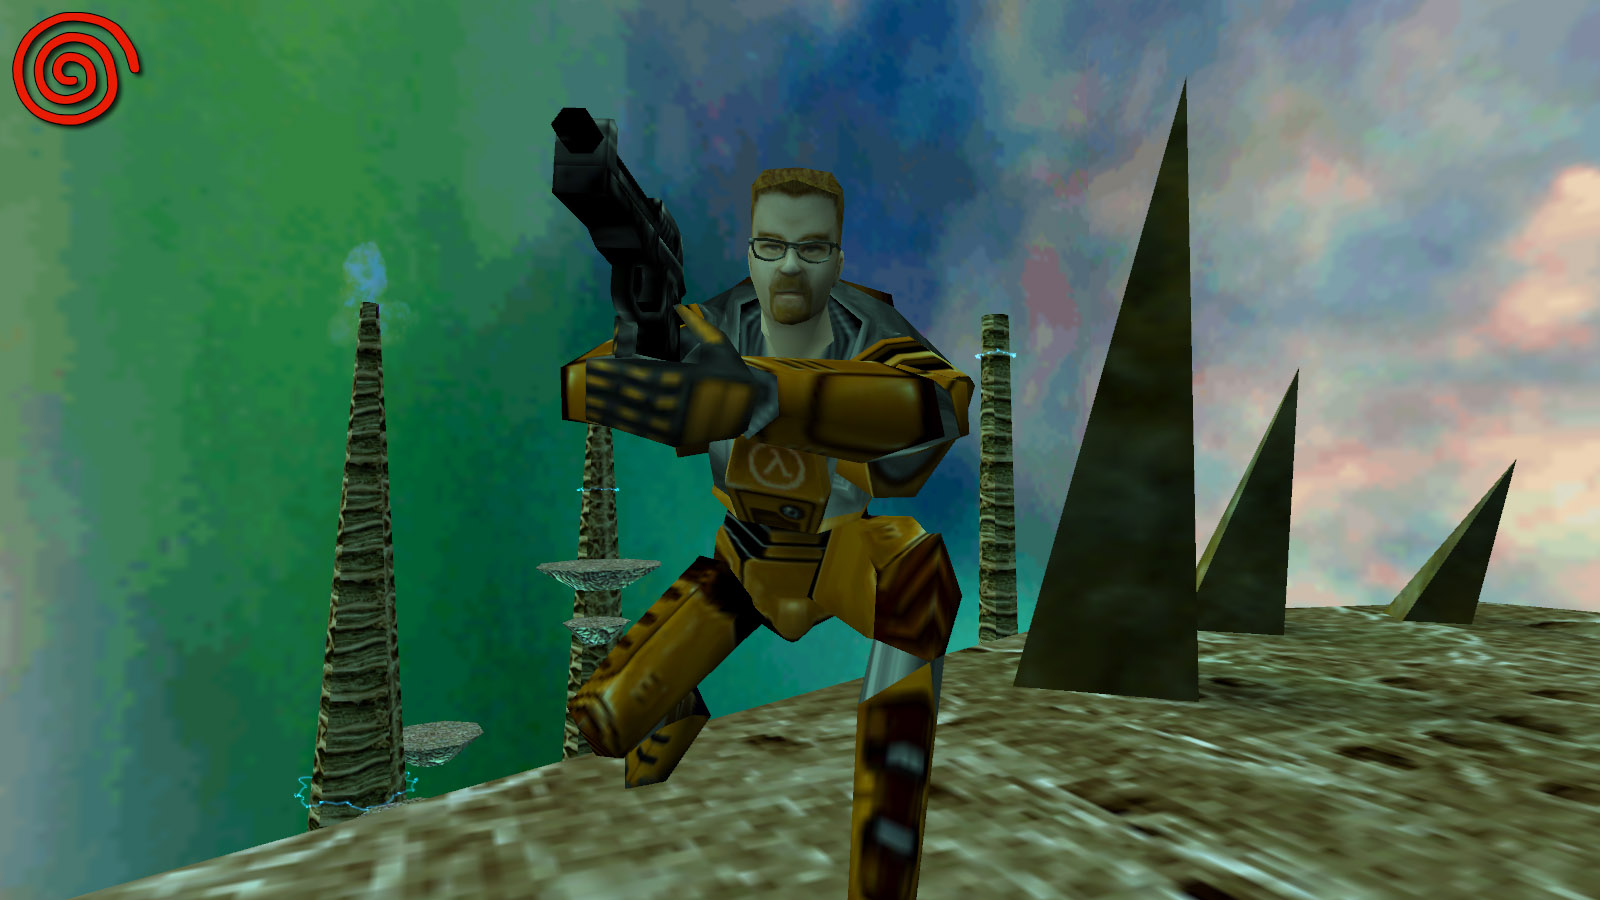 half life blue shift download apunkagames